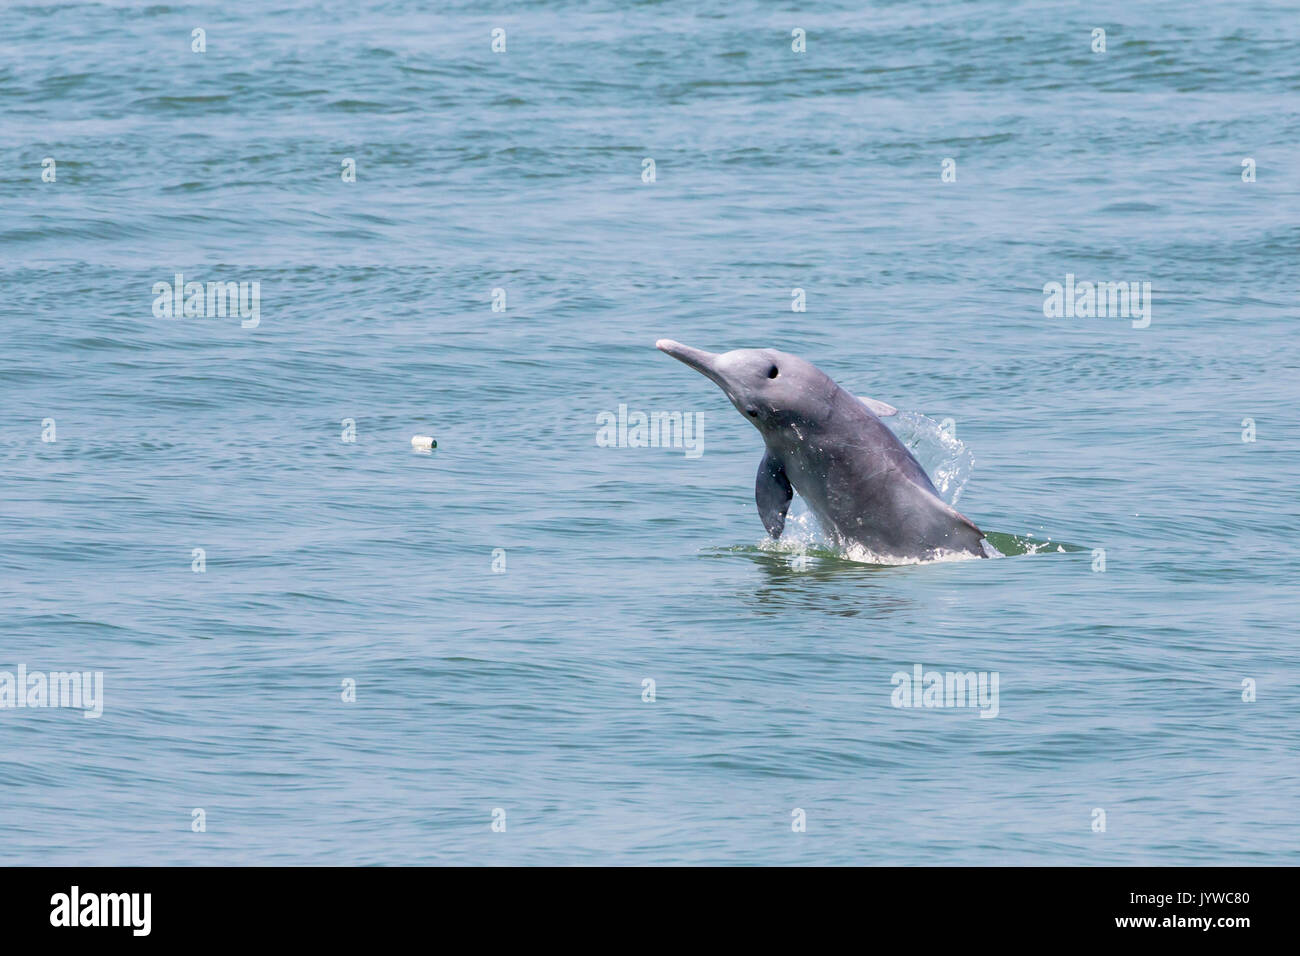 A young Indo-Pacific Humpback Dolphin (Sousa chinensis) breaching in Hong Kong waters, with rubbish (plastic bottle) in the sea. - Stock Image